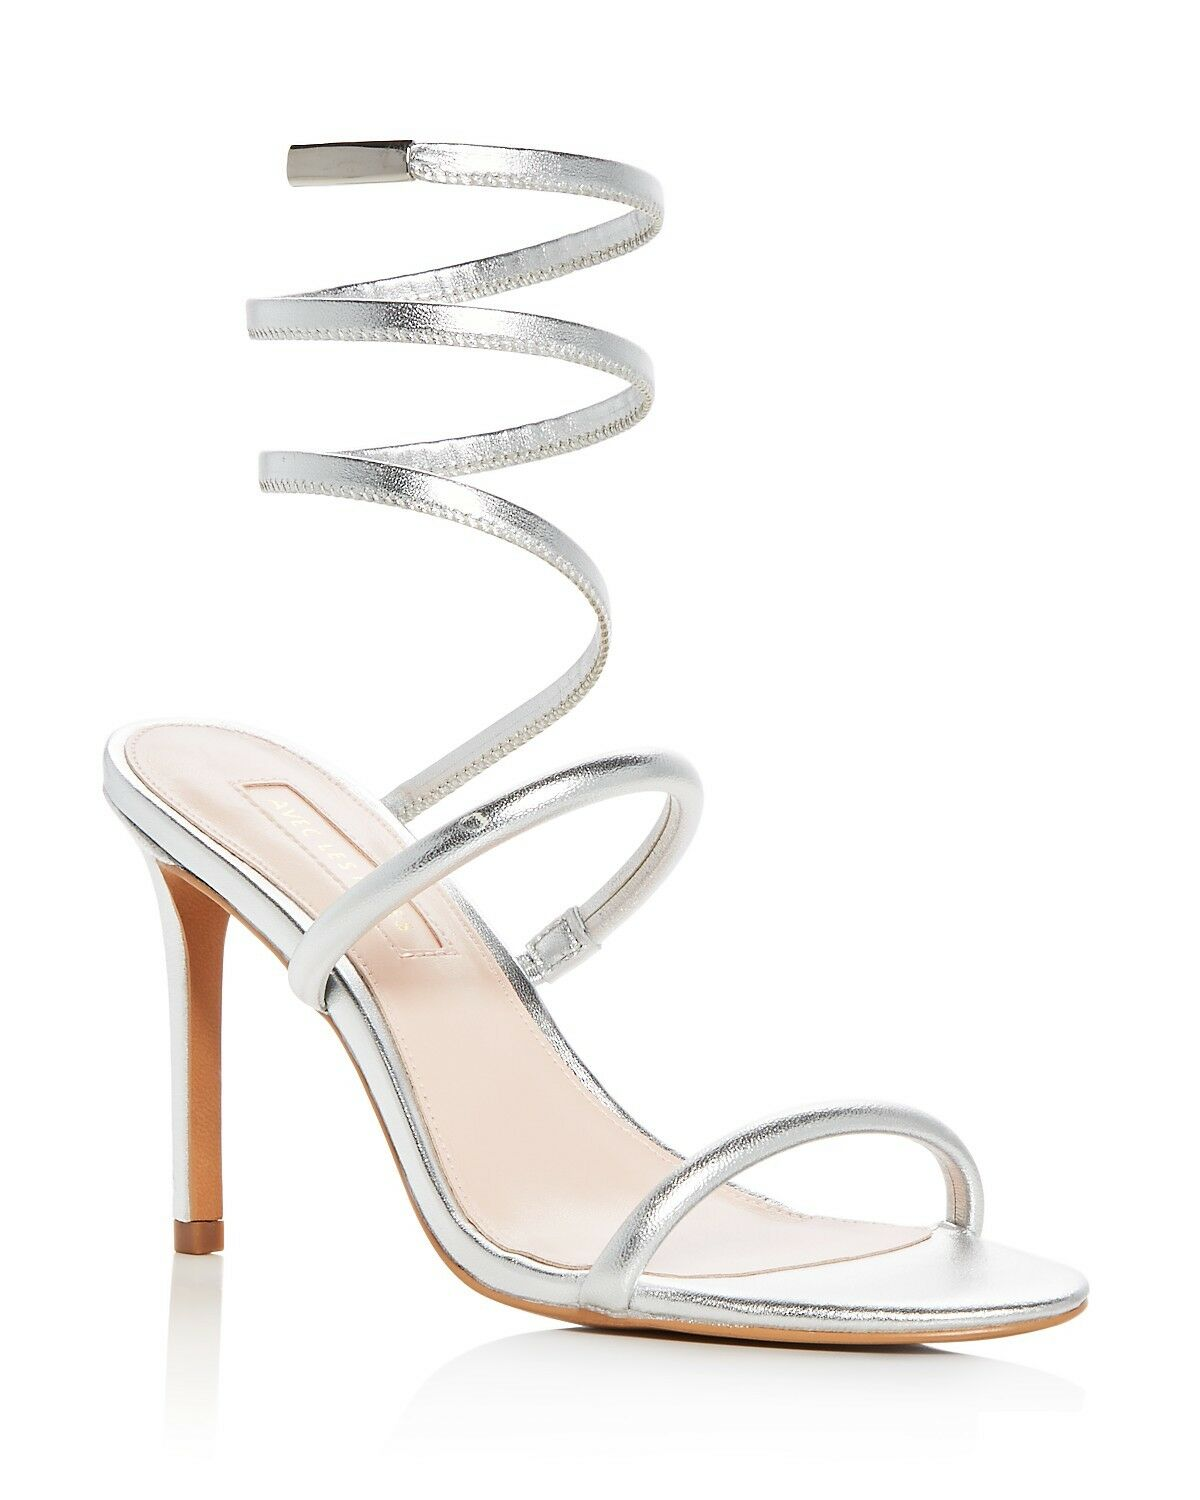 Avec Les Filles Joia Leather Ankle Wrap High-Heel Sandals Size 9.5 Silver